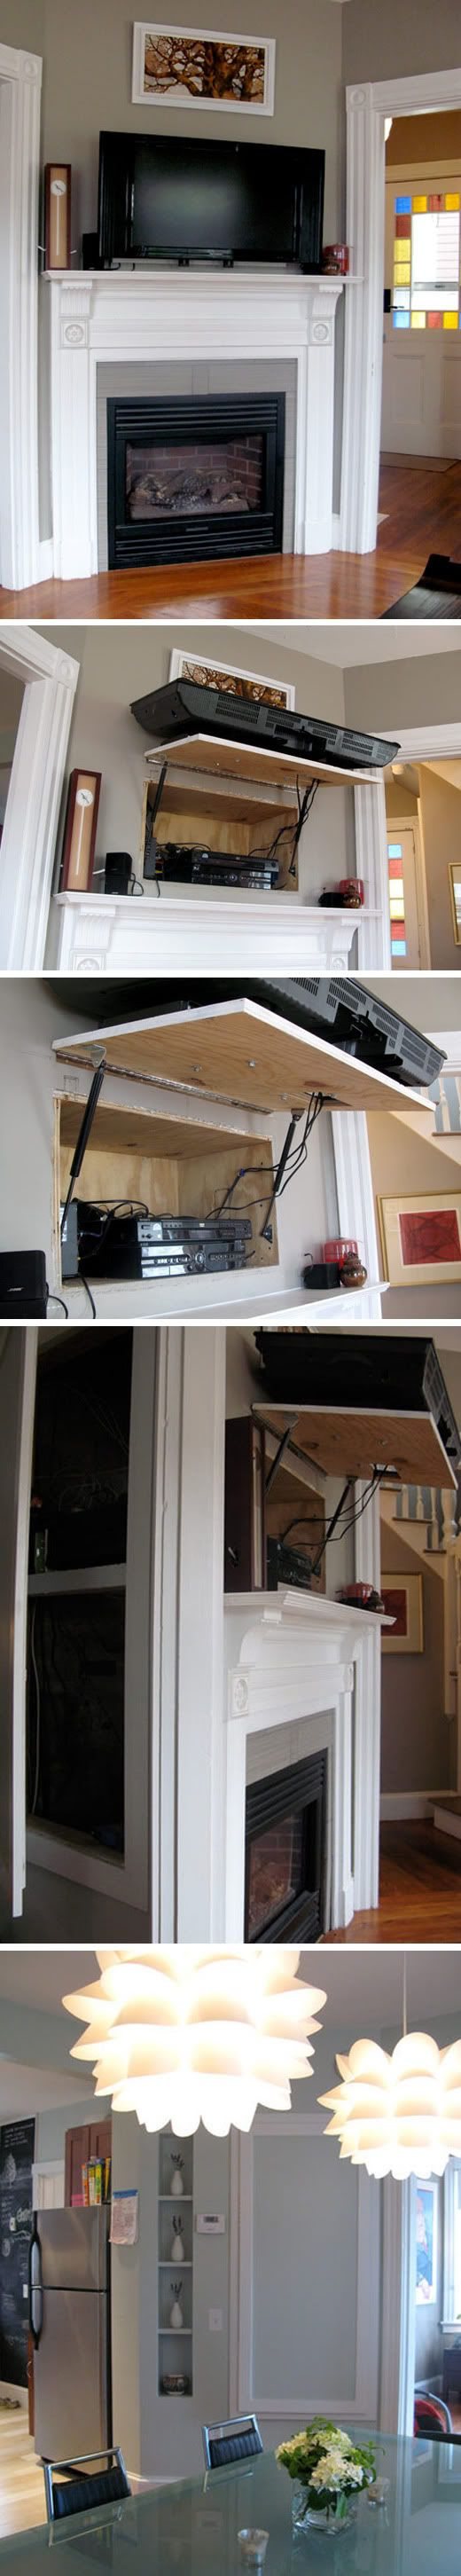 pretty much GENIUS!  There is even additional storage space and access to cables from the other side of the wall, that when closed, is not an obvious closet! Well done.